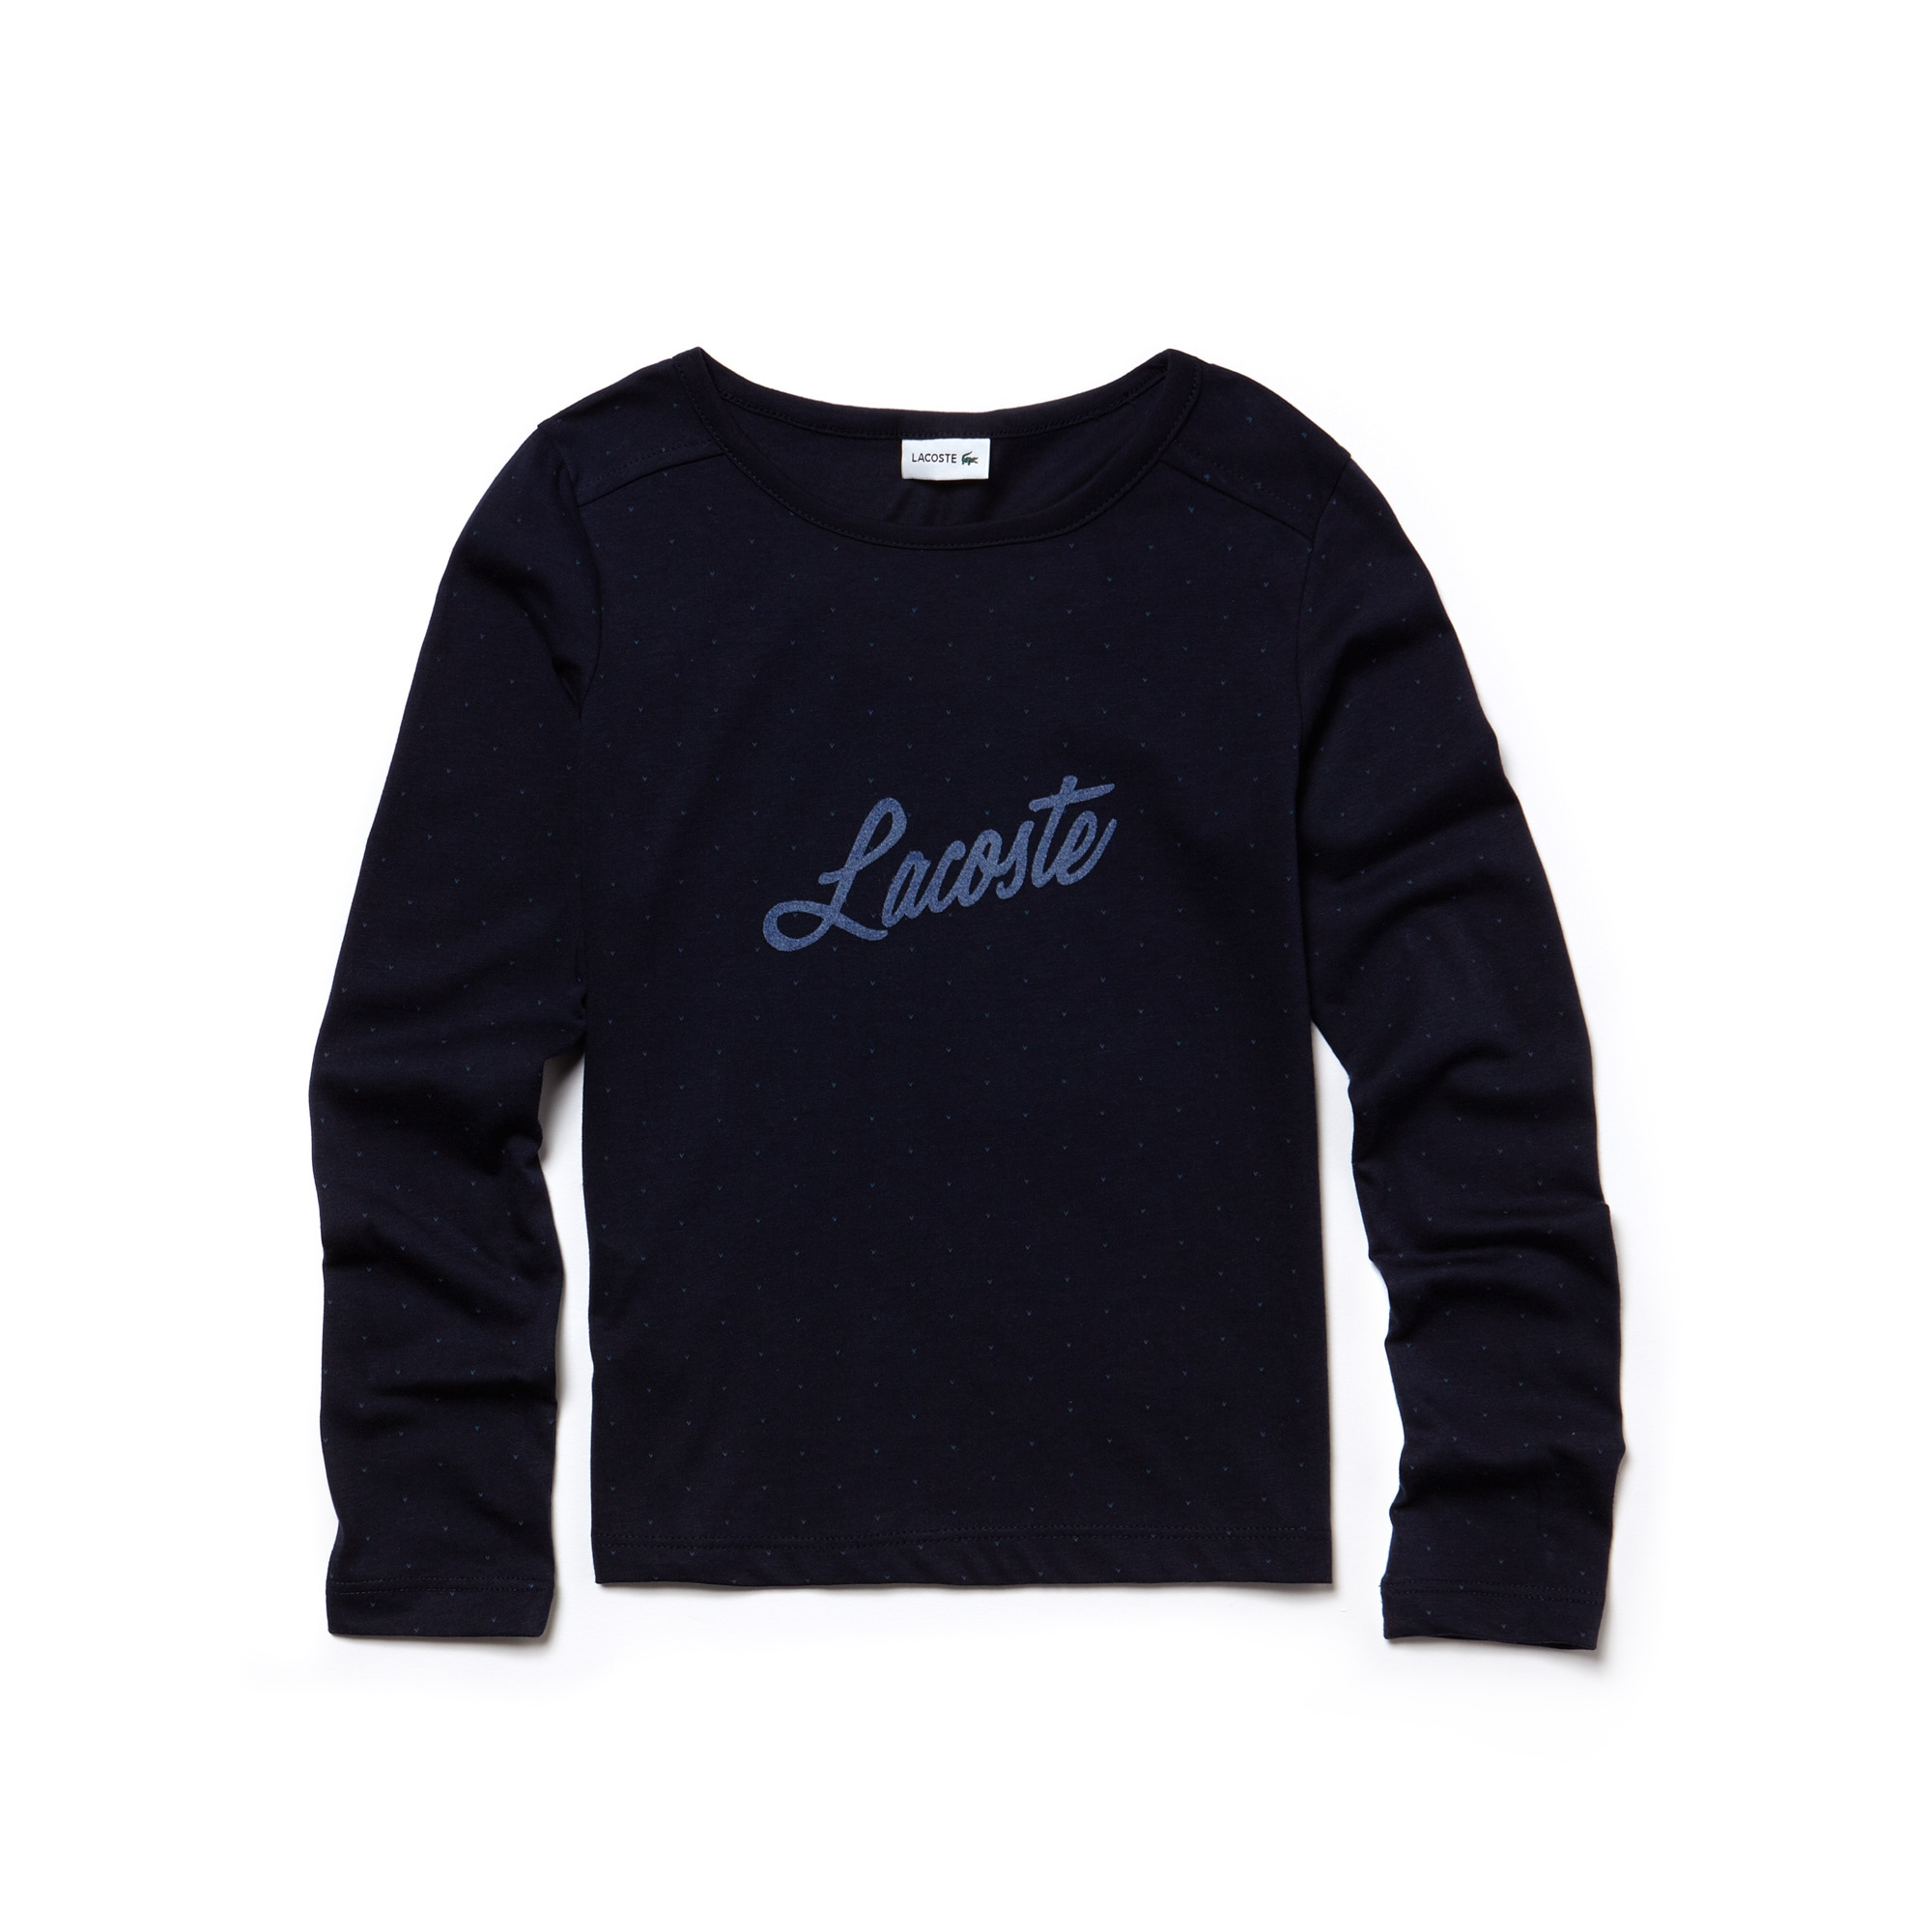 T-shirt Bambina in jersey stampato con floccatura Lacoste